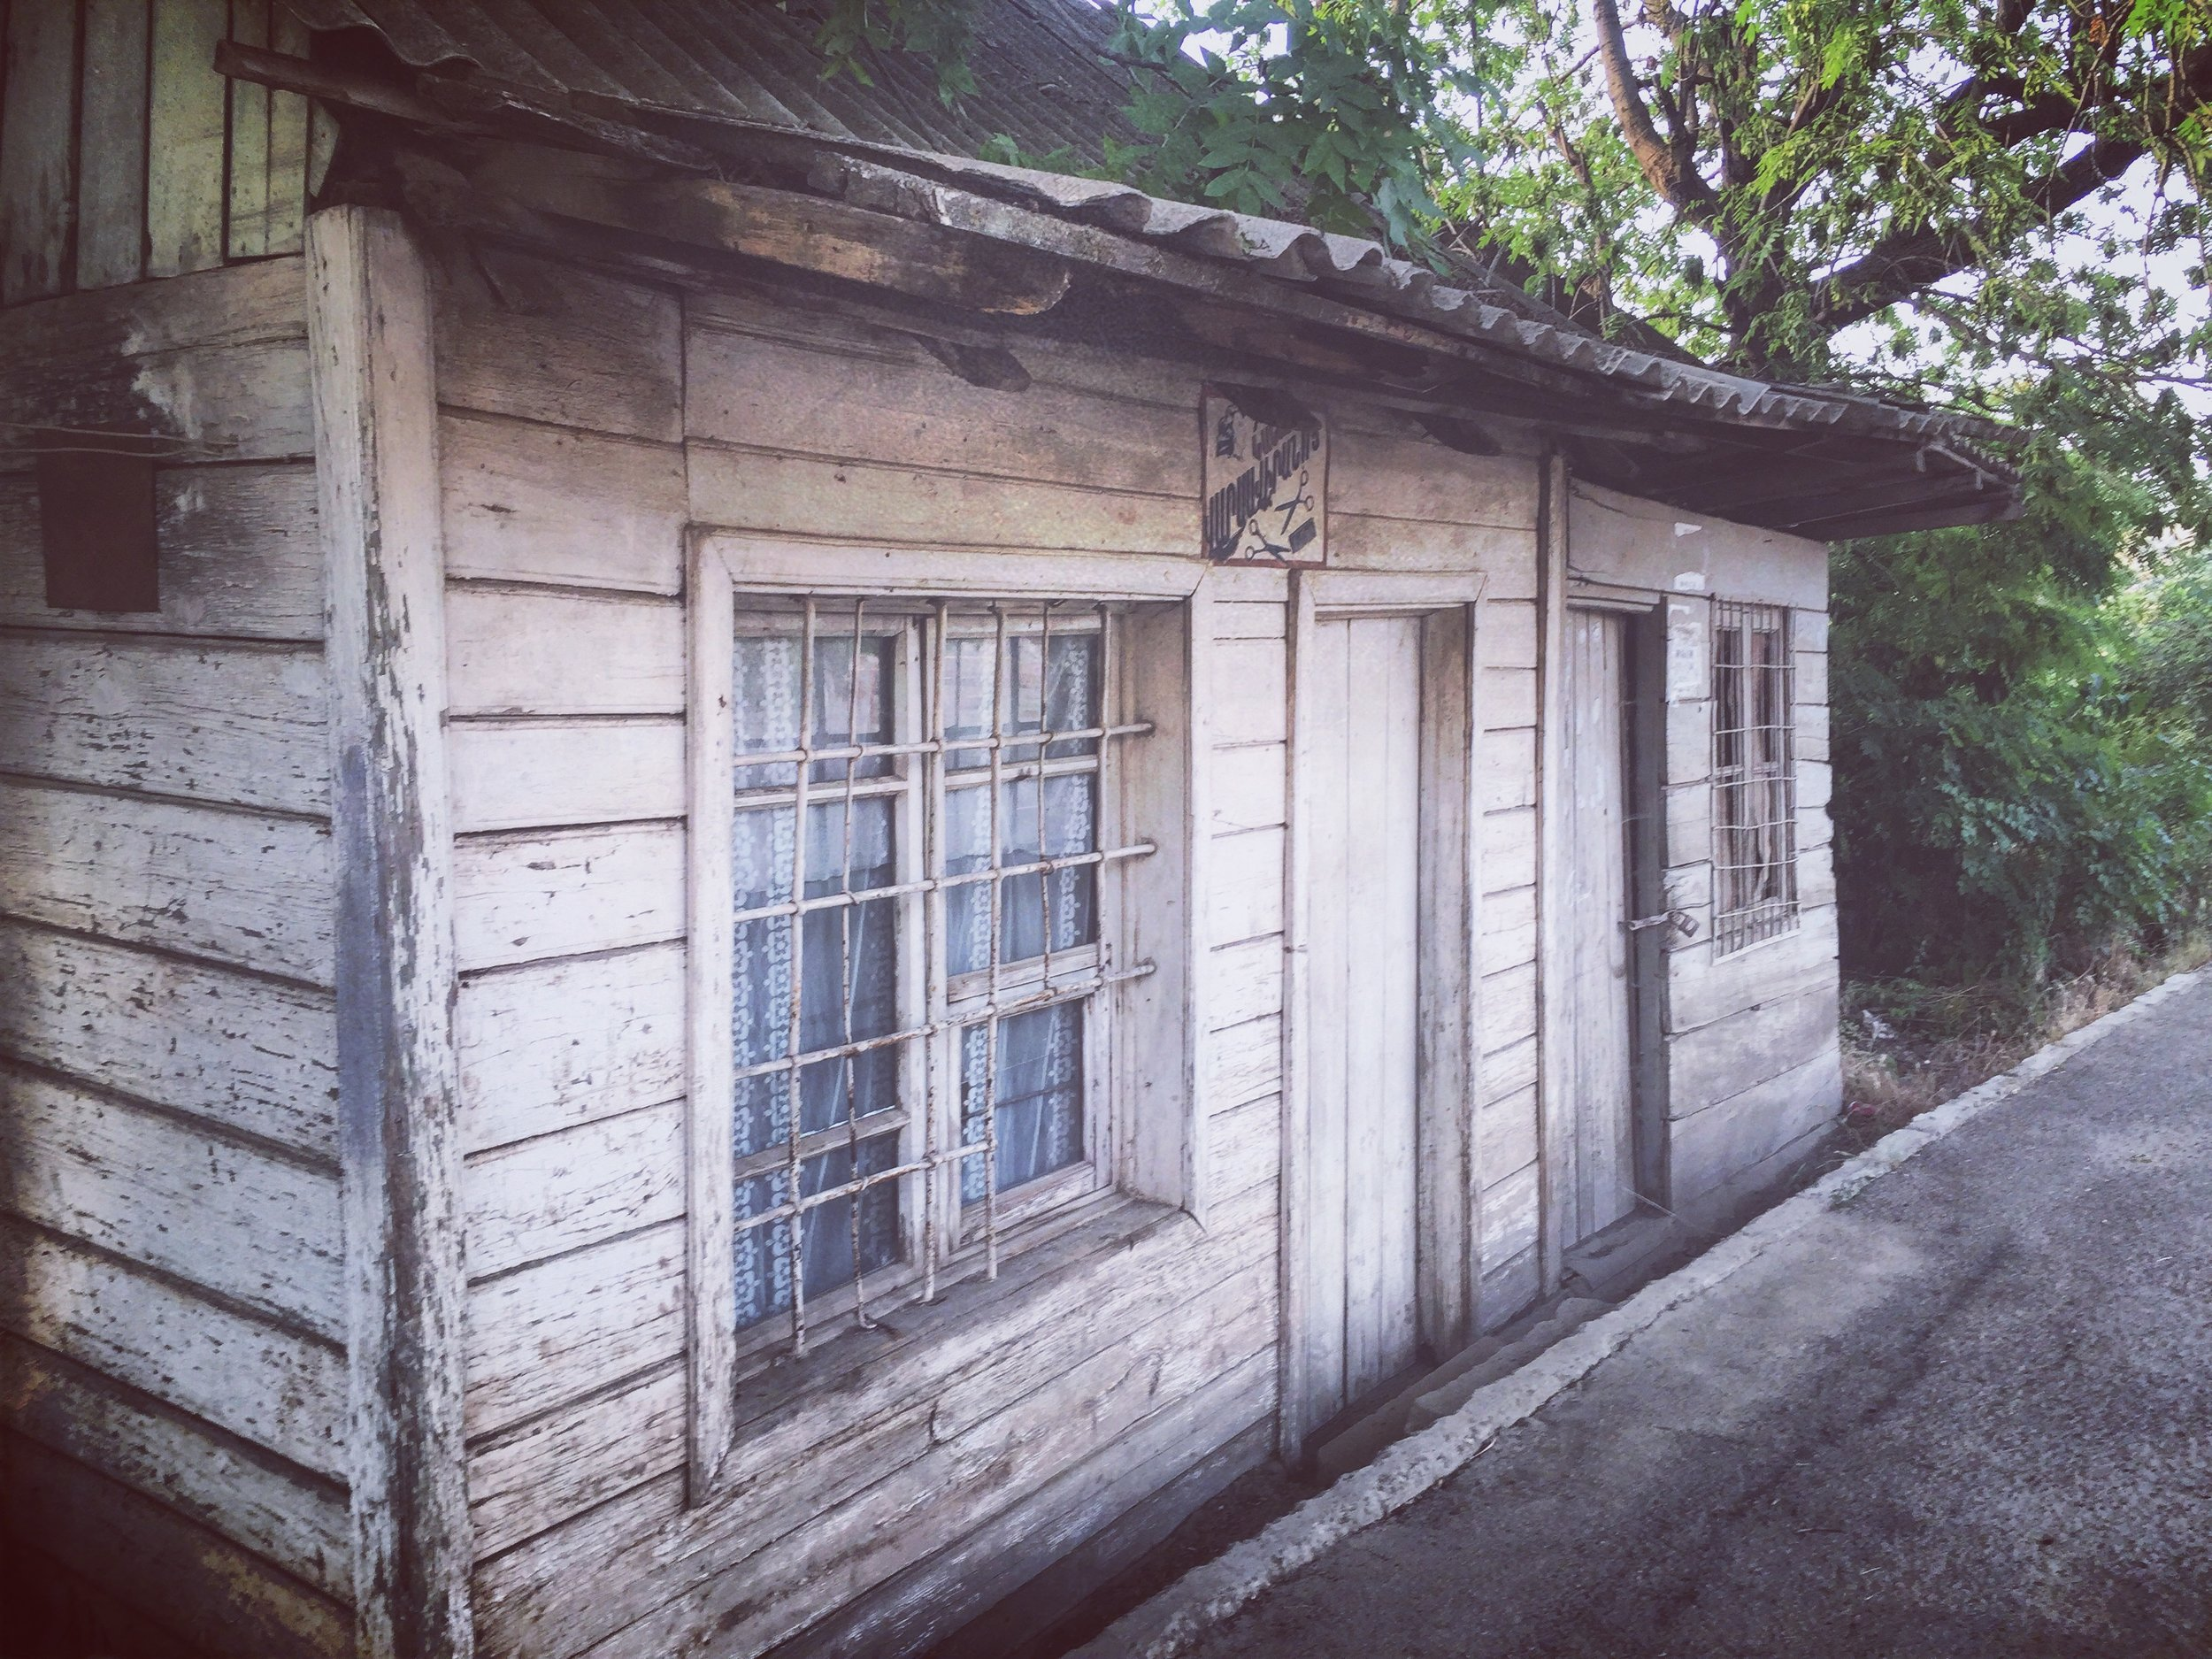 An old house in Tavush